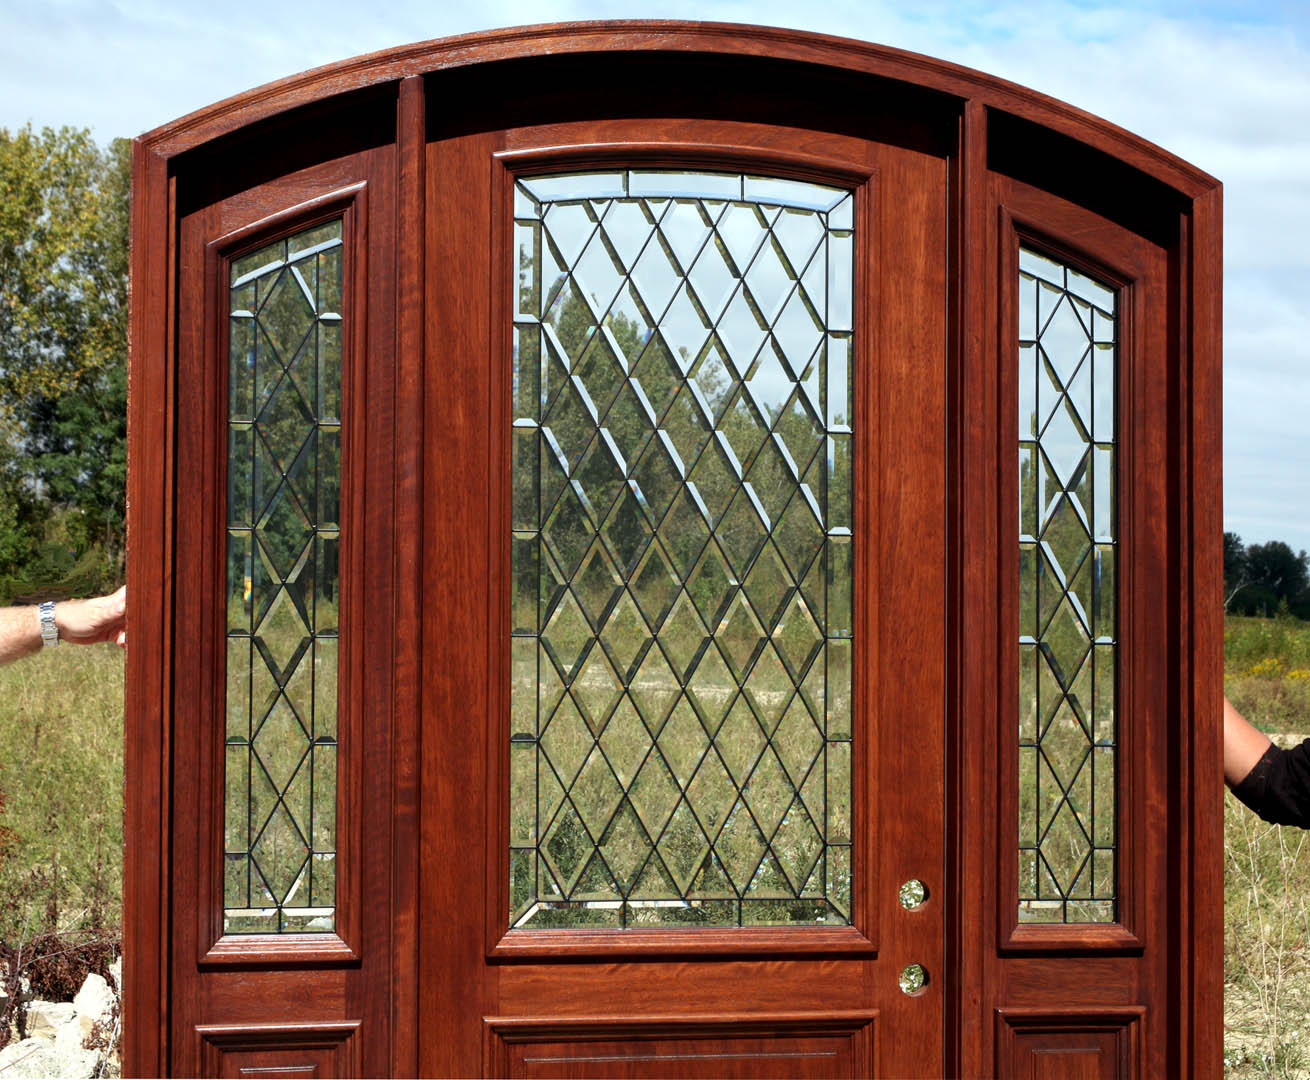 1080 #792F1D Arch Doors – Arched Top Doors – Exterior Arched Doors save image Arch Doors Exterior 39771310